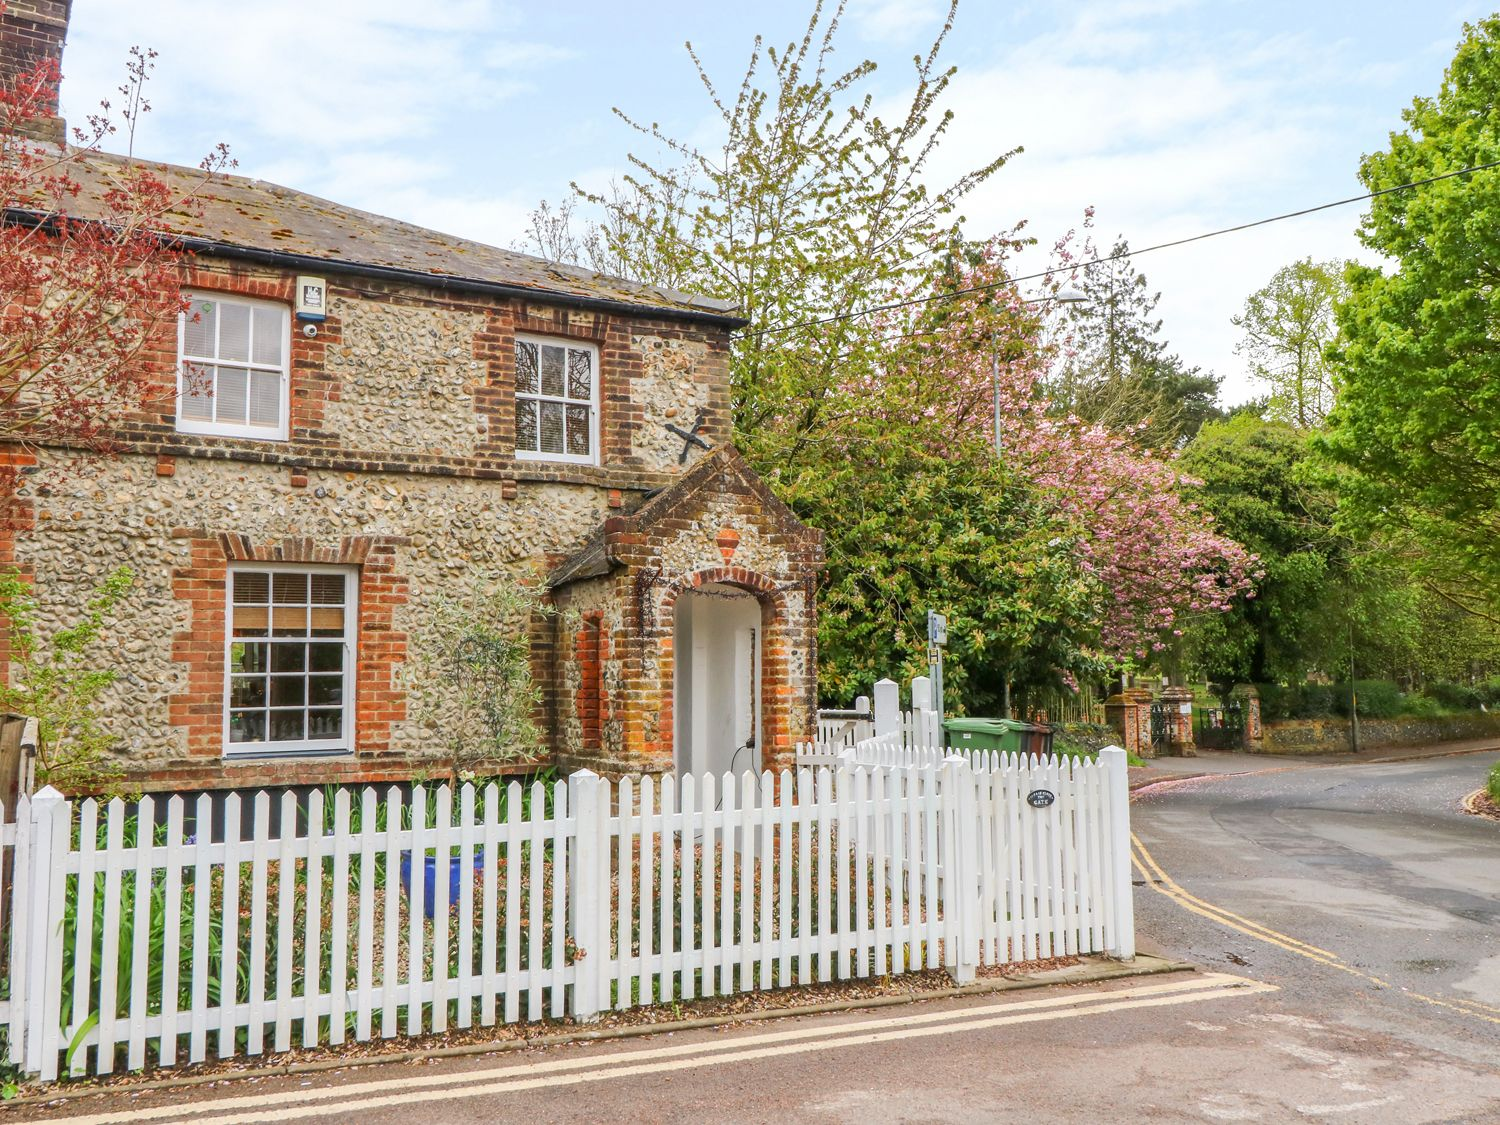 Holiday Cottages in Norfolk: 3 Station Cottages, Wymondham | Sykes Cottages